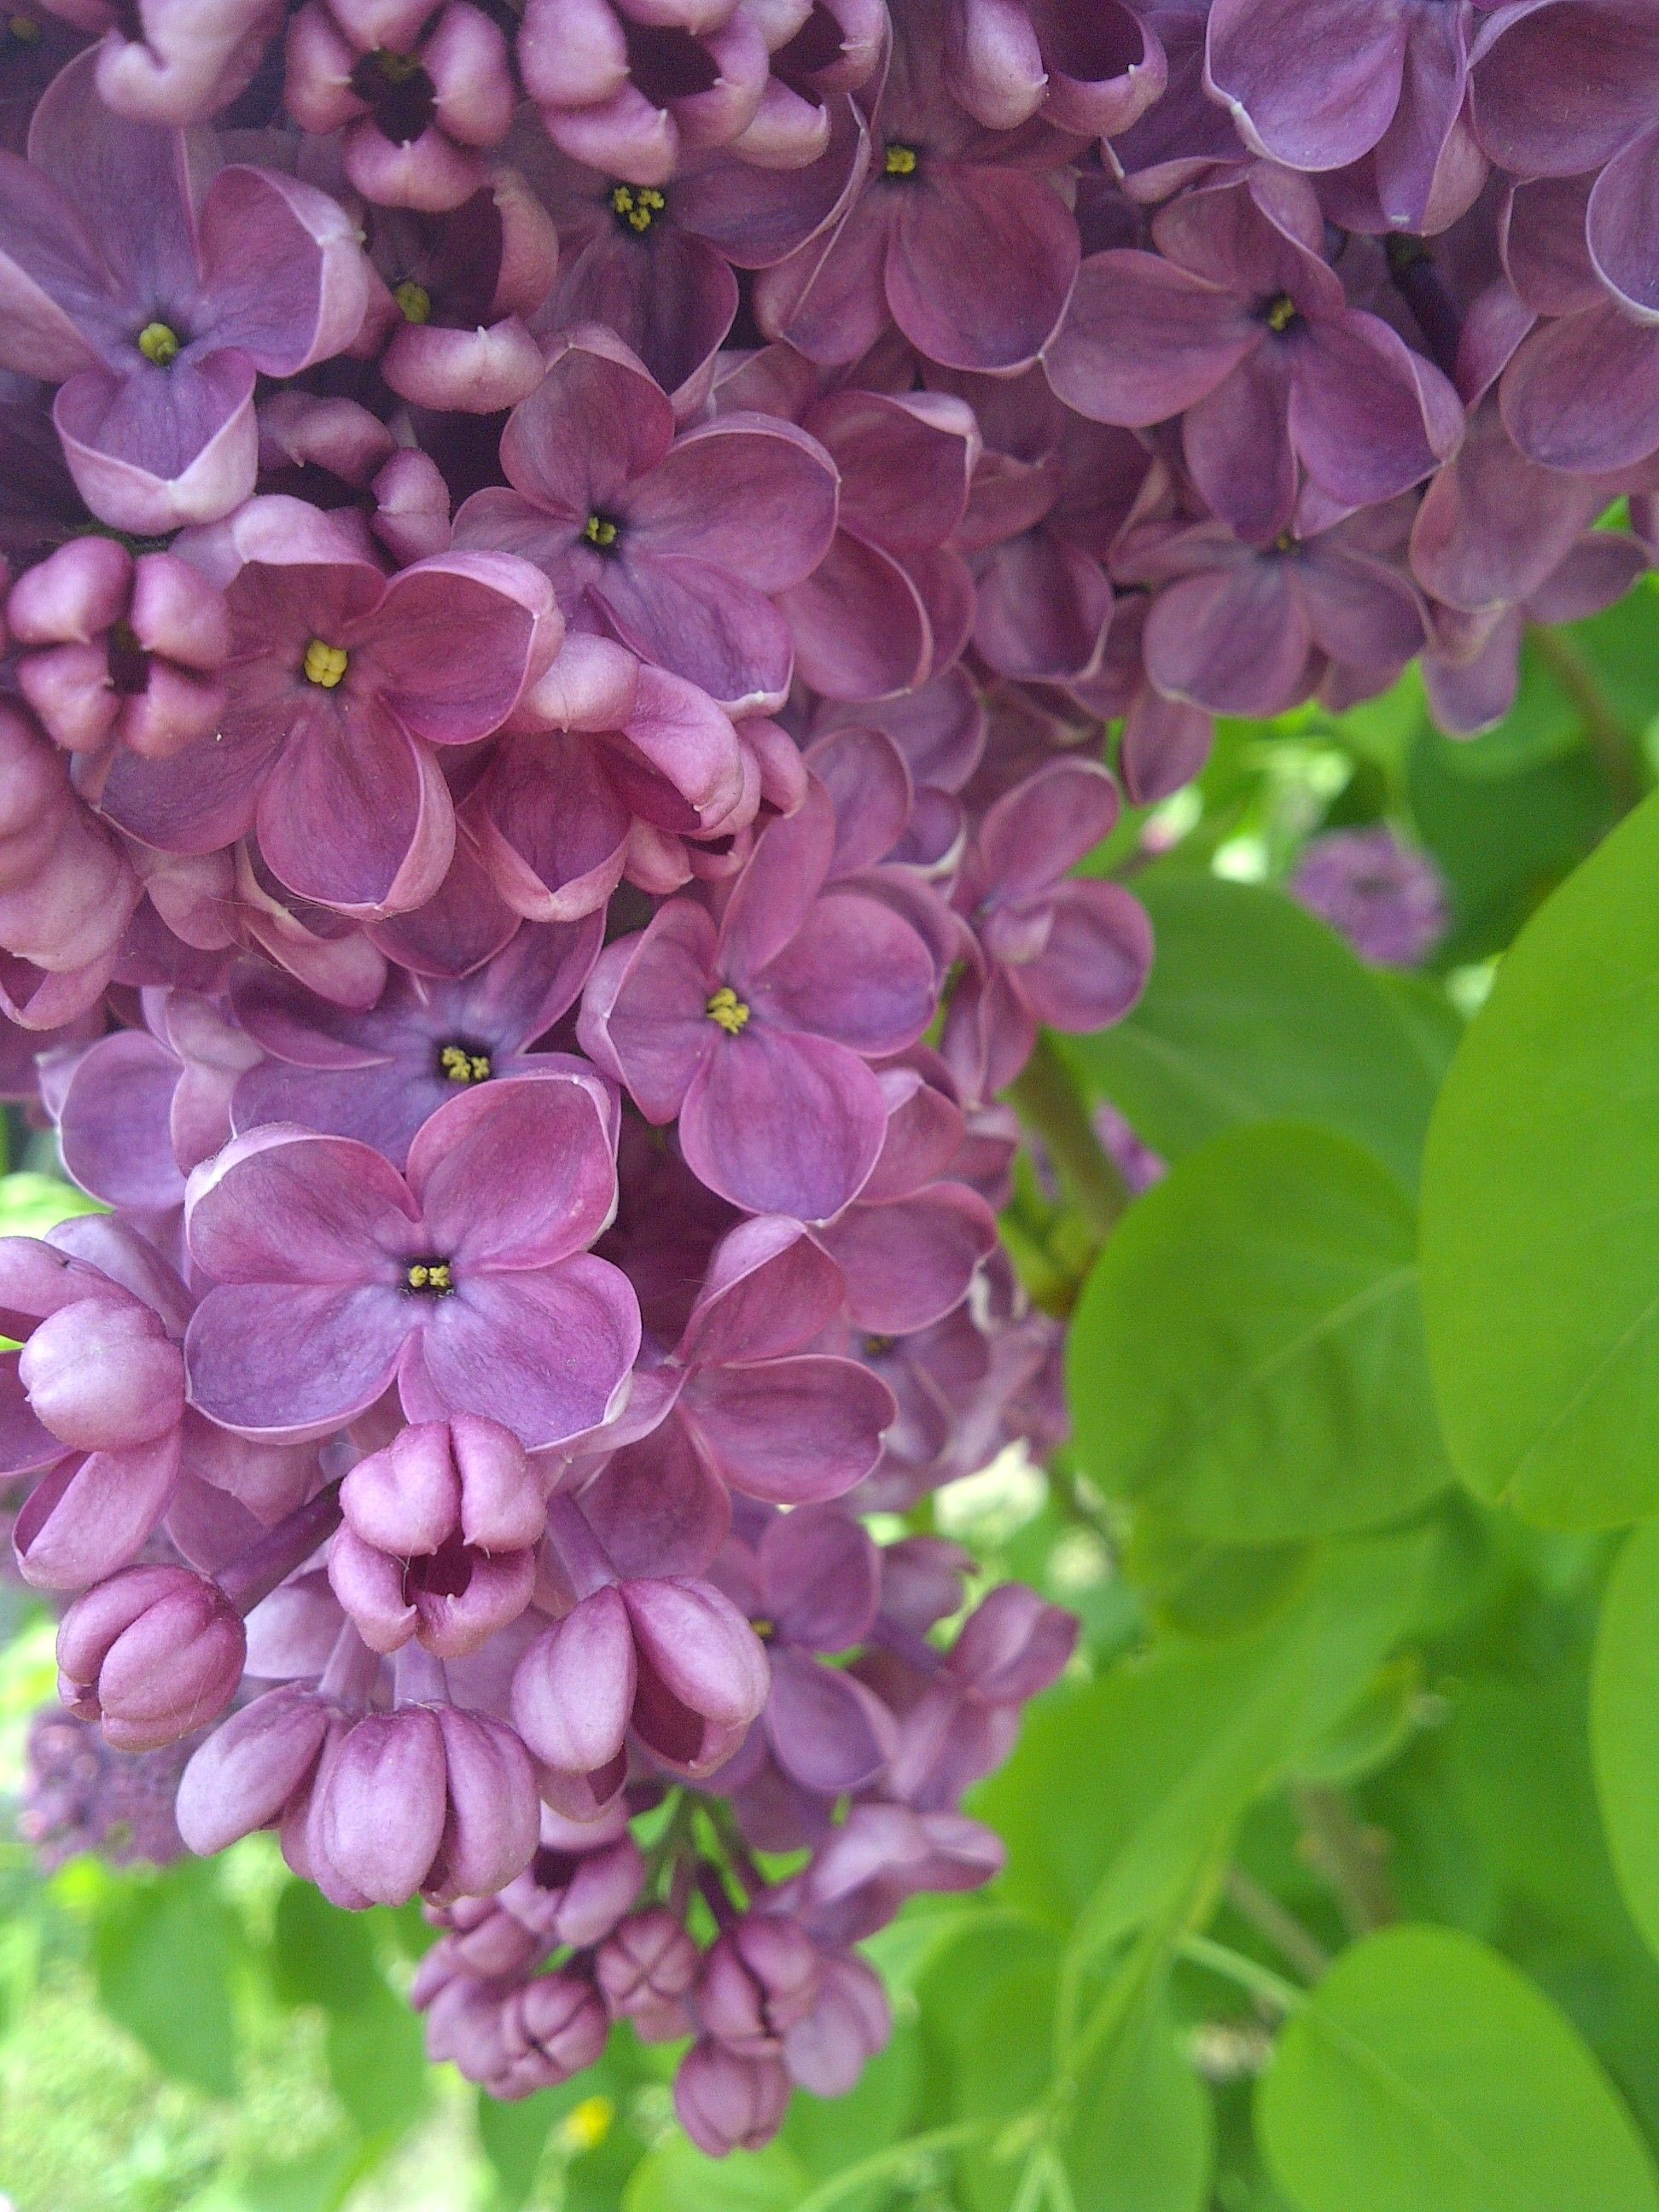 Oh the smell of Lilacs~ I remember them growing up SO well there was a Lilac bush in the alley beside our house. it wasn't ours but I loved to walk down the alley and go smell them! To this day I LOVE Lilacs:) the fragrance just lingered.......